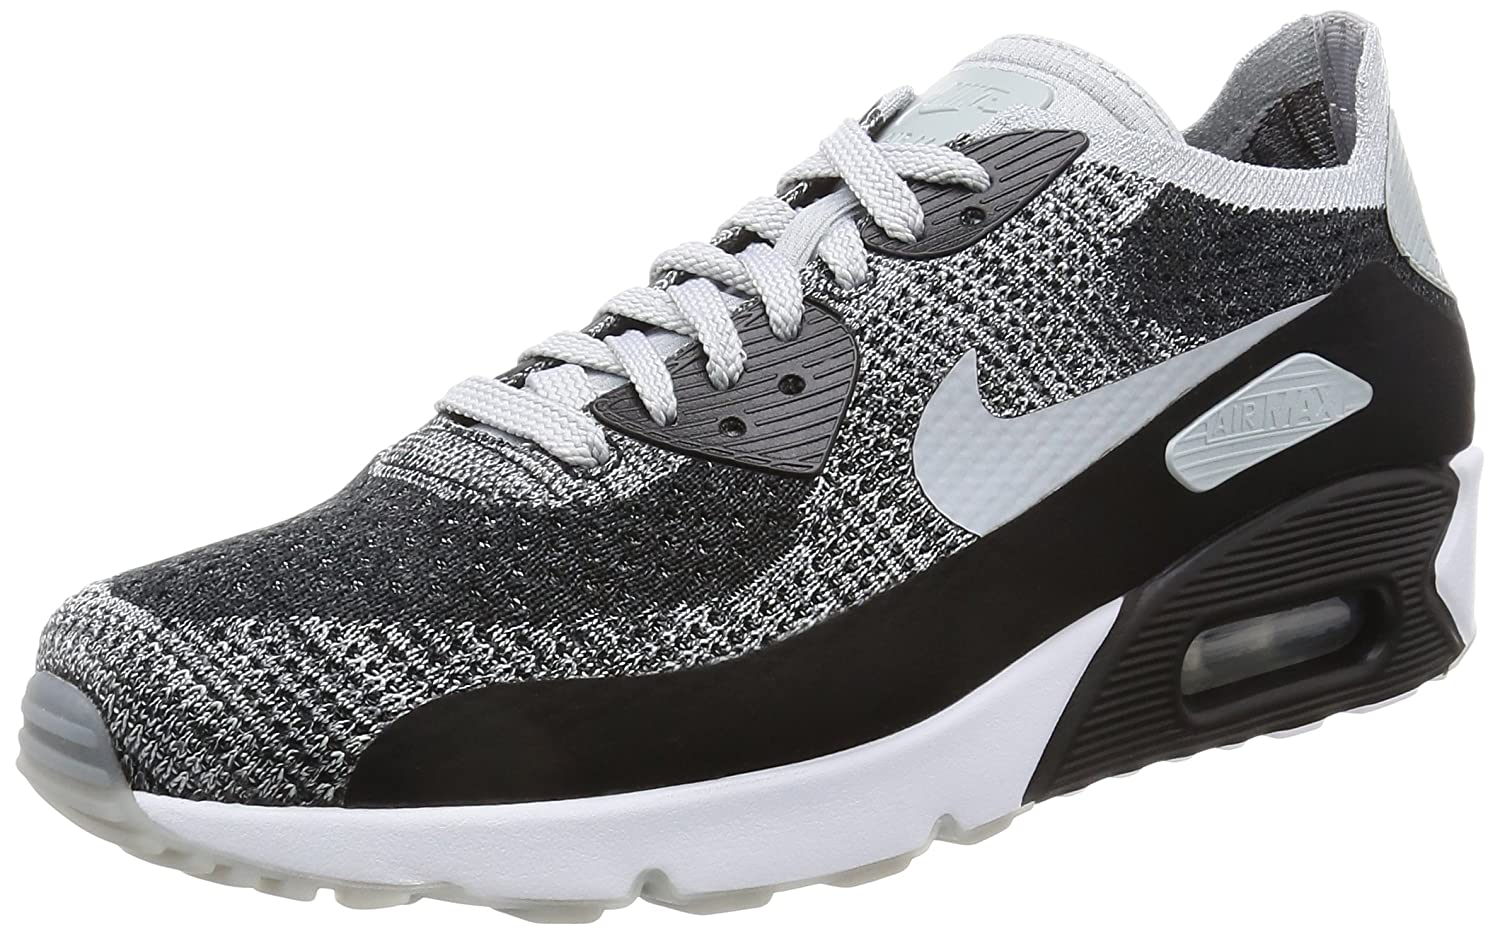 quality design 061cf f4213 Amazon.com   Nike Men s Air Max 90 Ultra 2.0 Flyknit, Black Wolf Grey-Pure  Platinum, 10.5 M US   Road Running